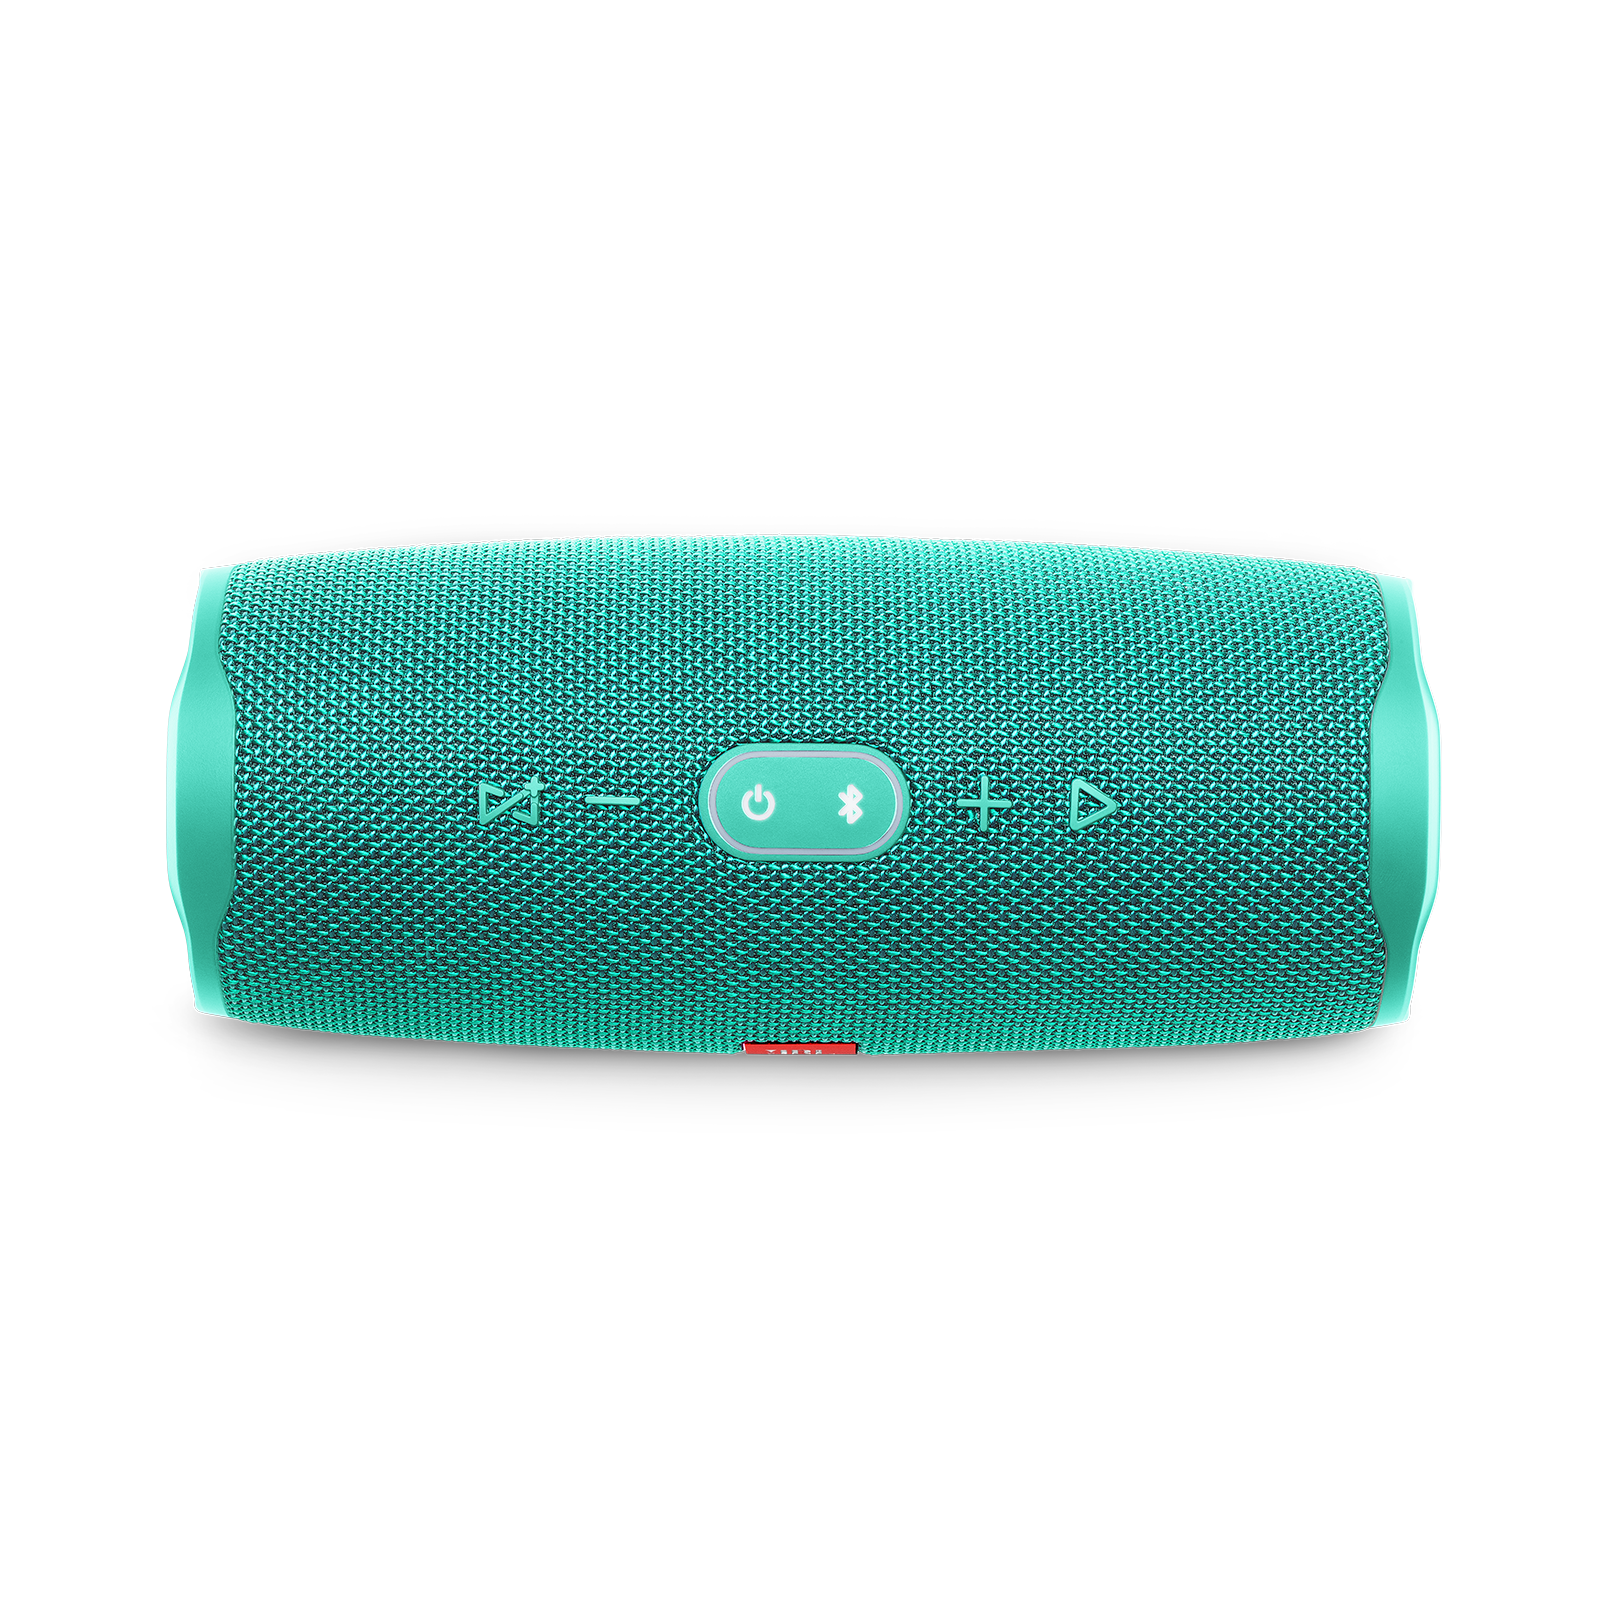 JBL Charge 4 - Teal - Portable Bluetooth speaker - Detailshot 1